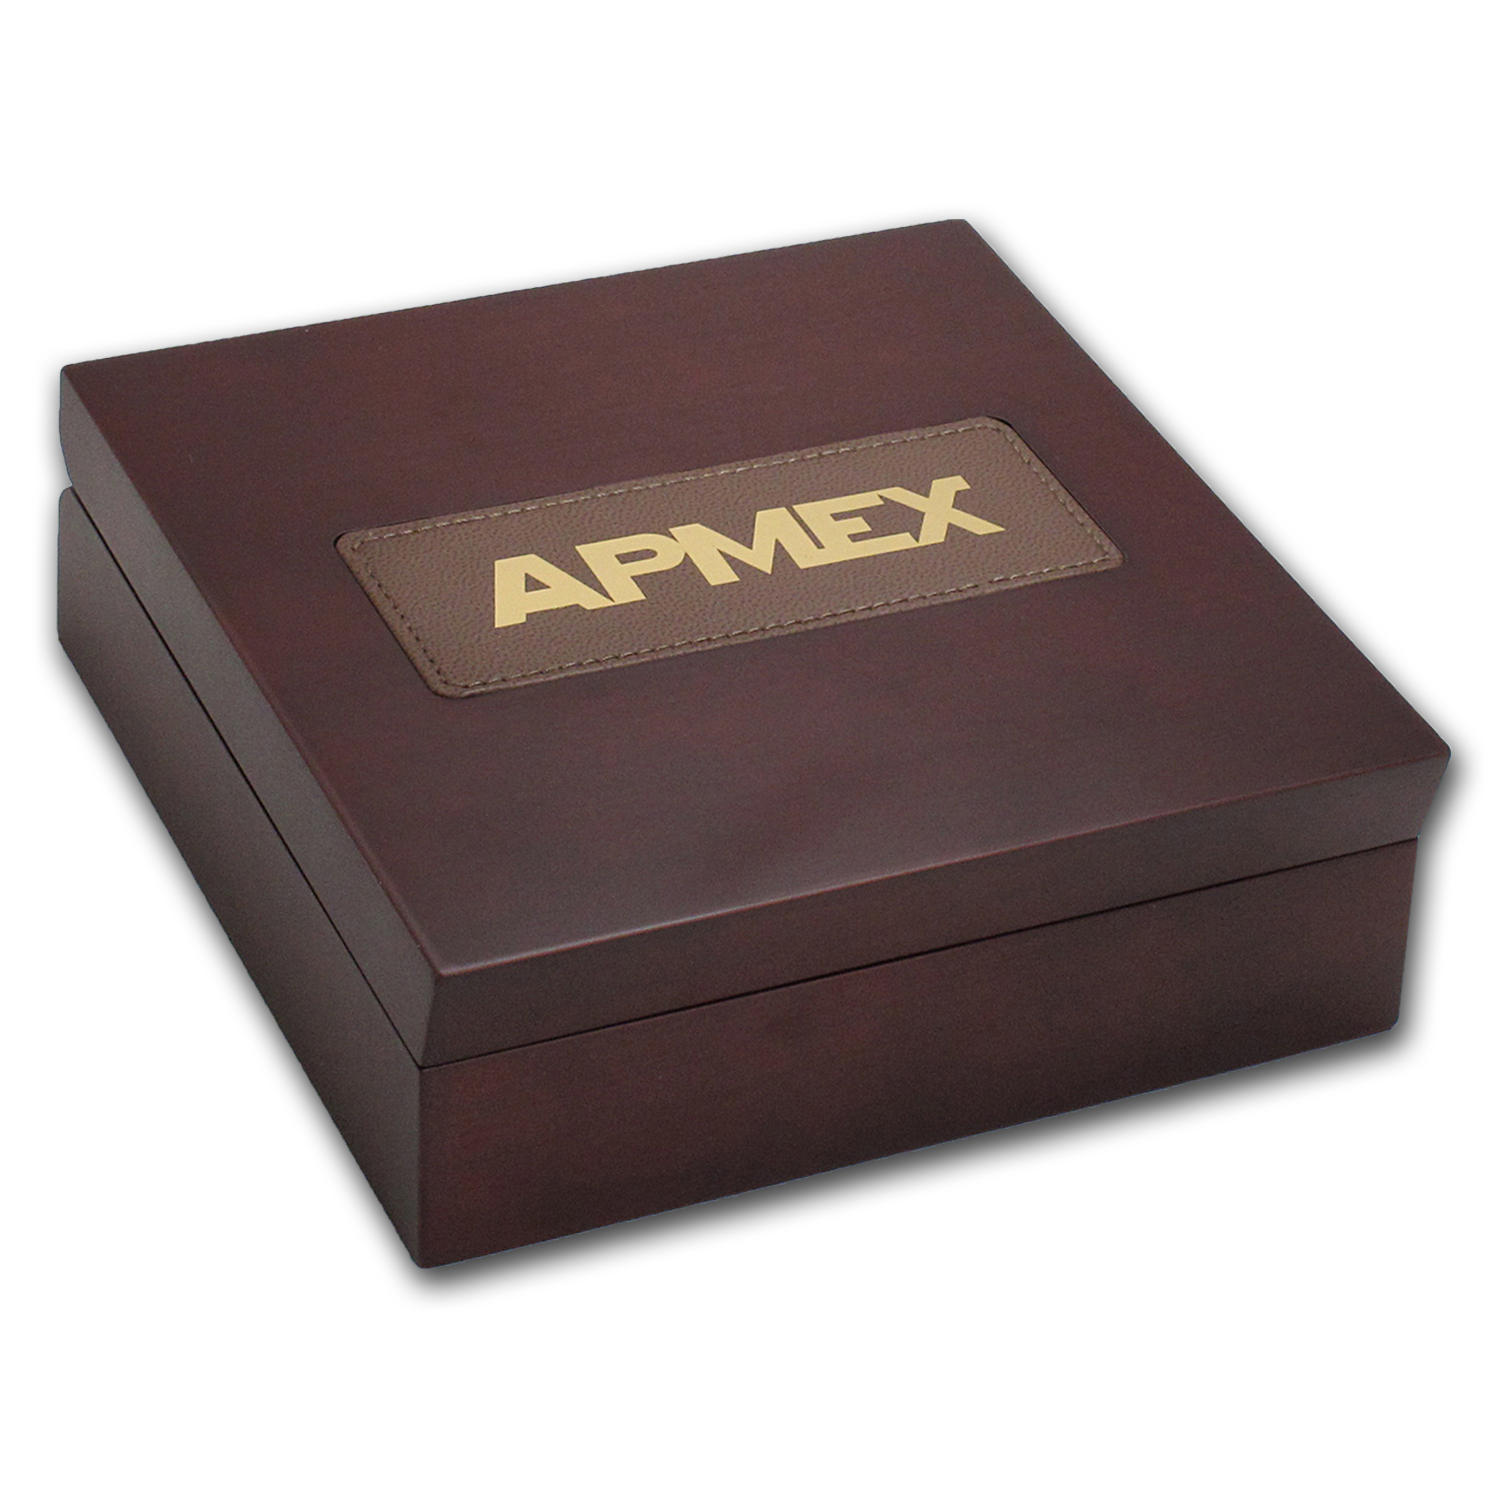 APMEX Wood Gift Box - 10 oz Perth Mint Silver Coin Series 1